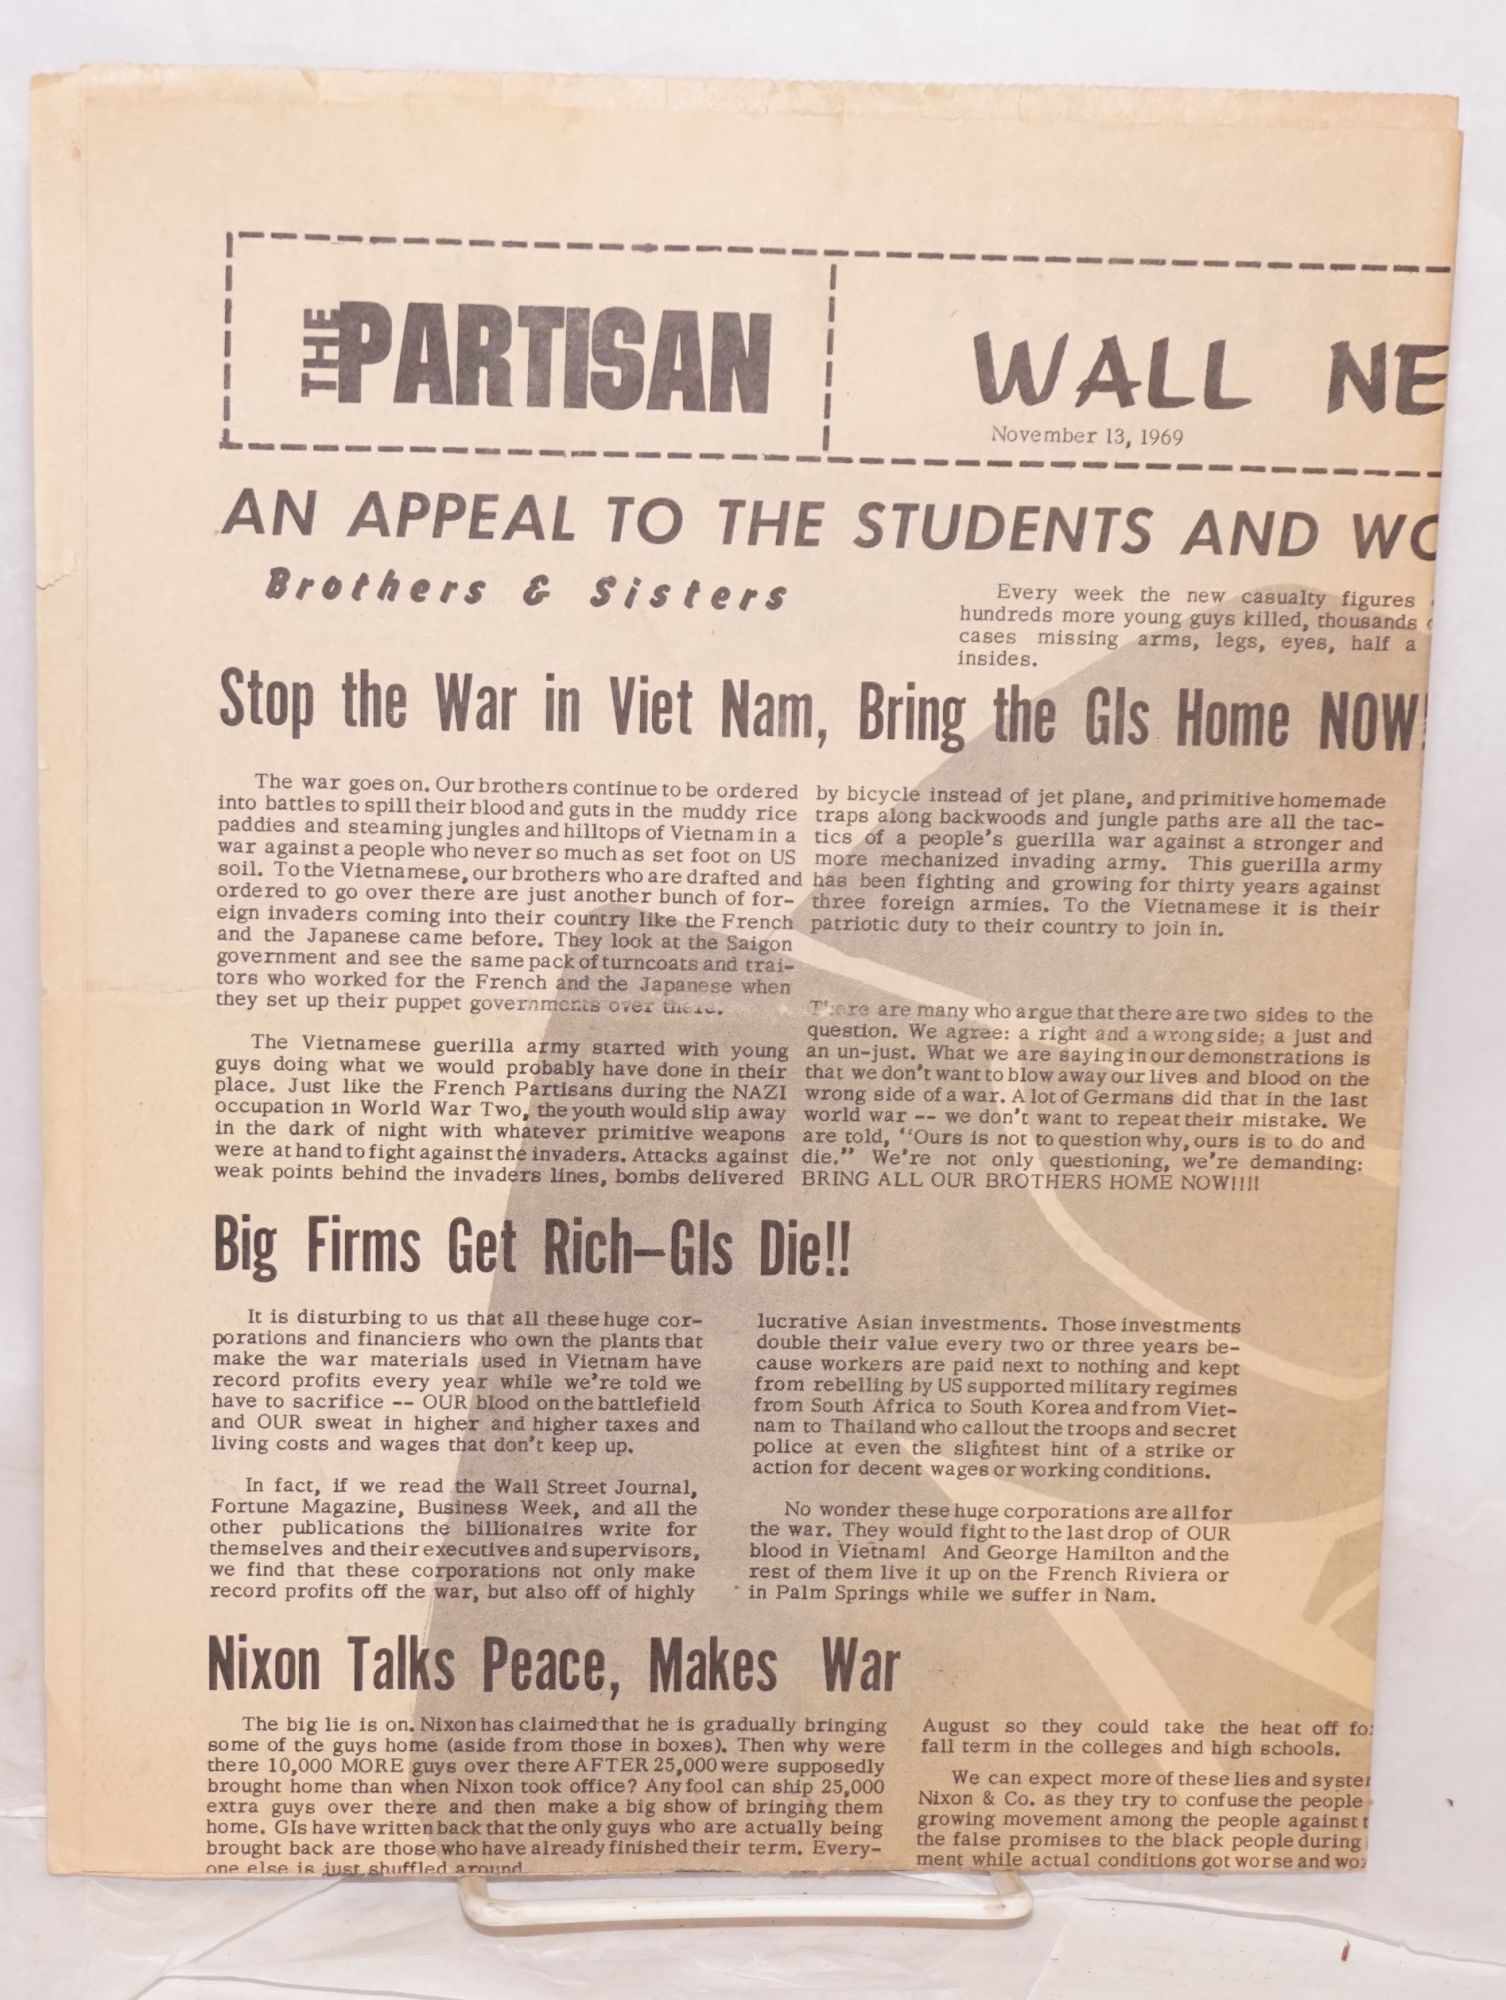 The Partisan: Wall Newspaper no  5 Nov  13, 1969 on Bolerium Books